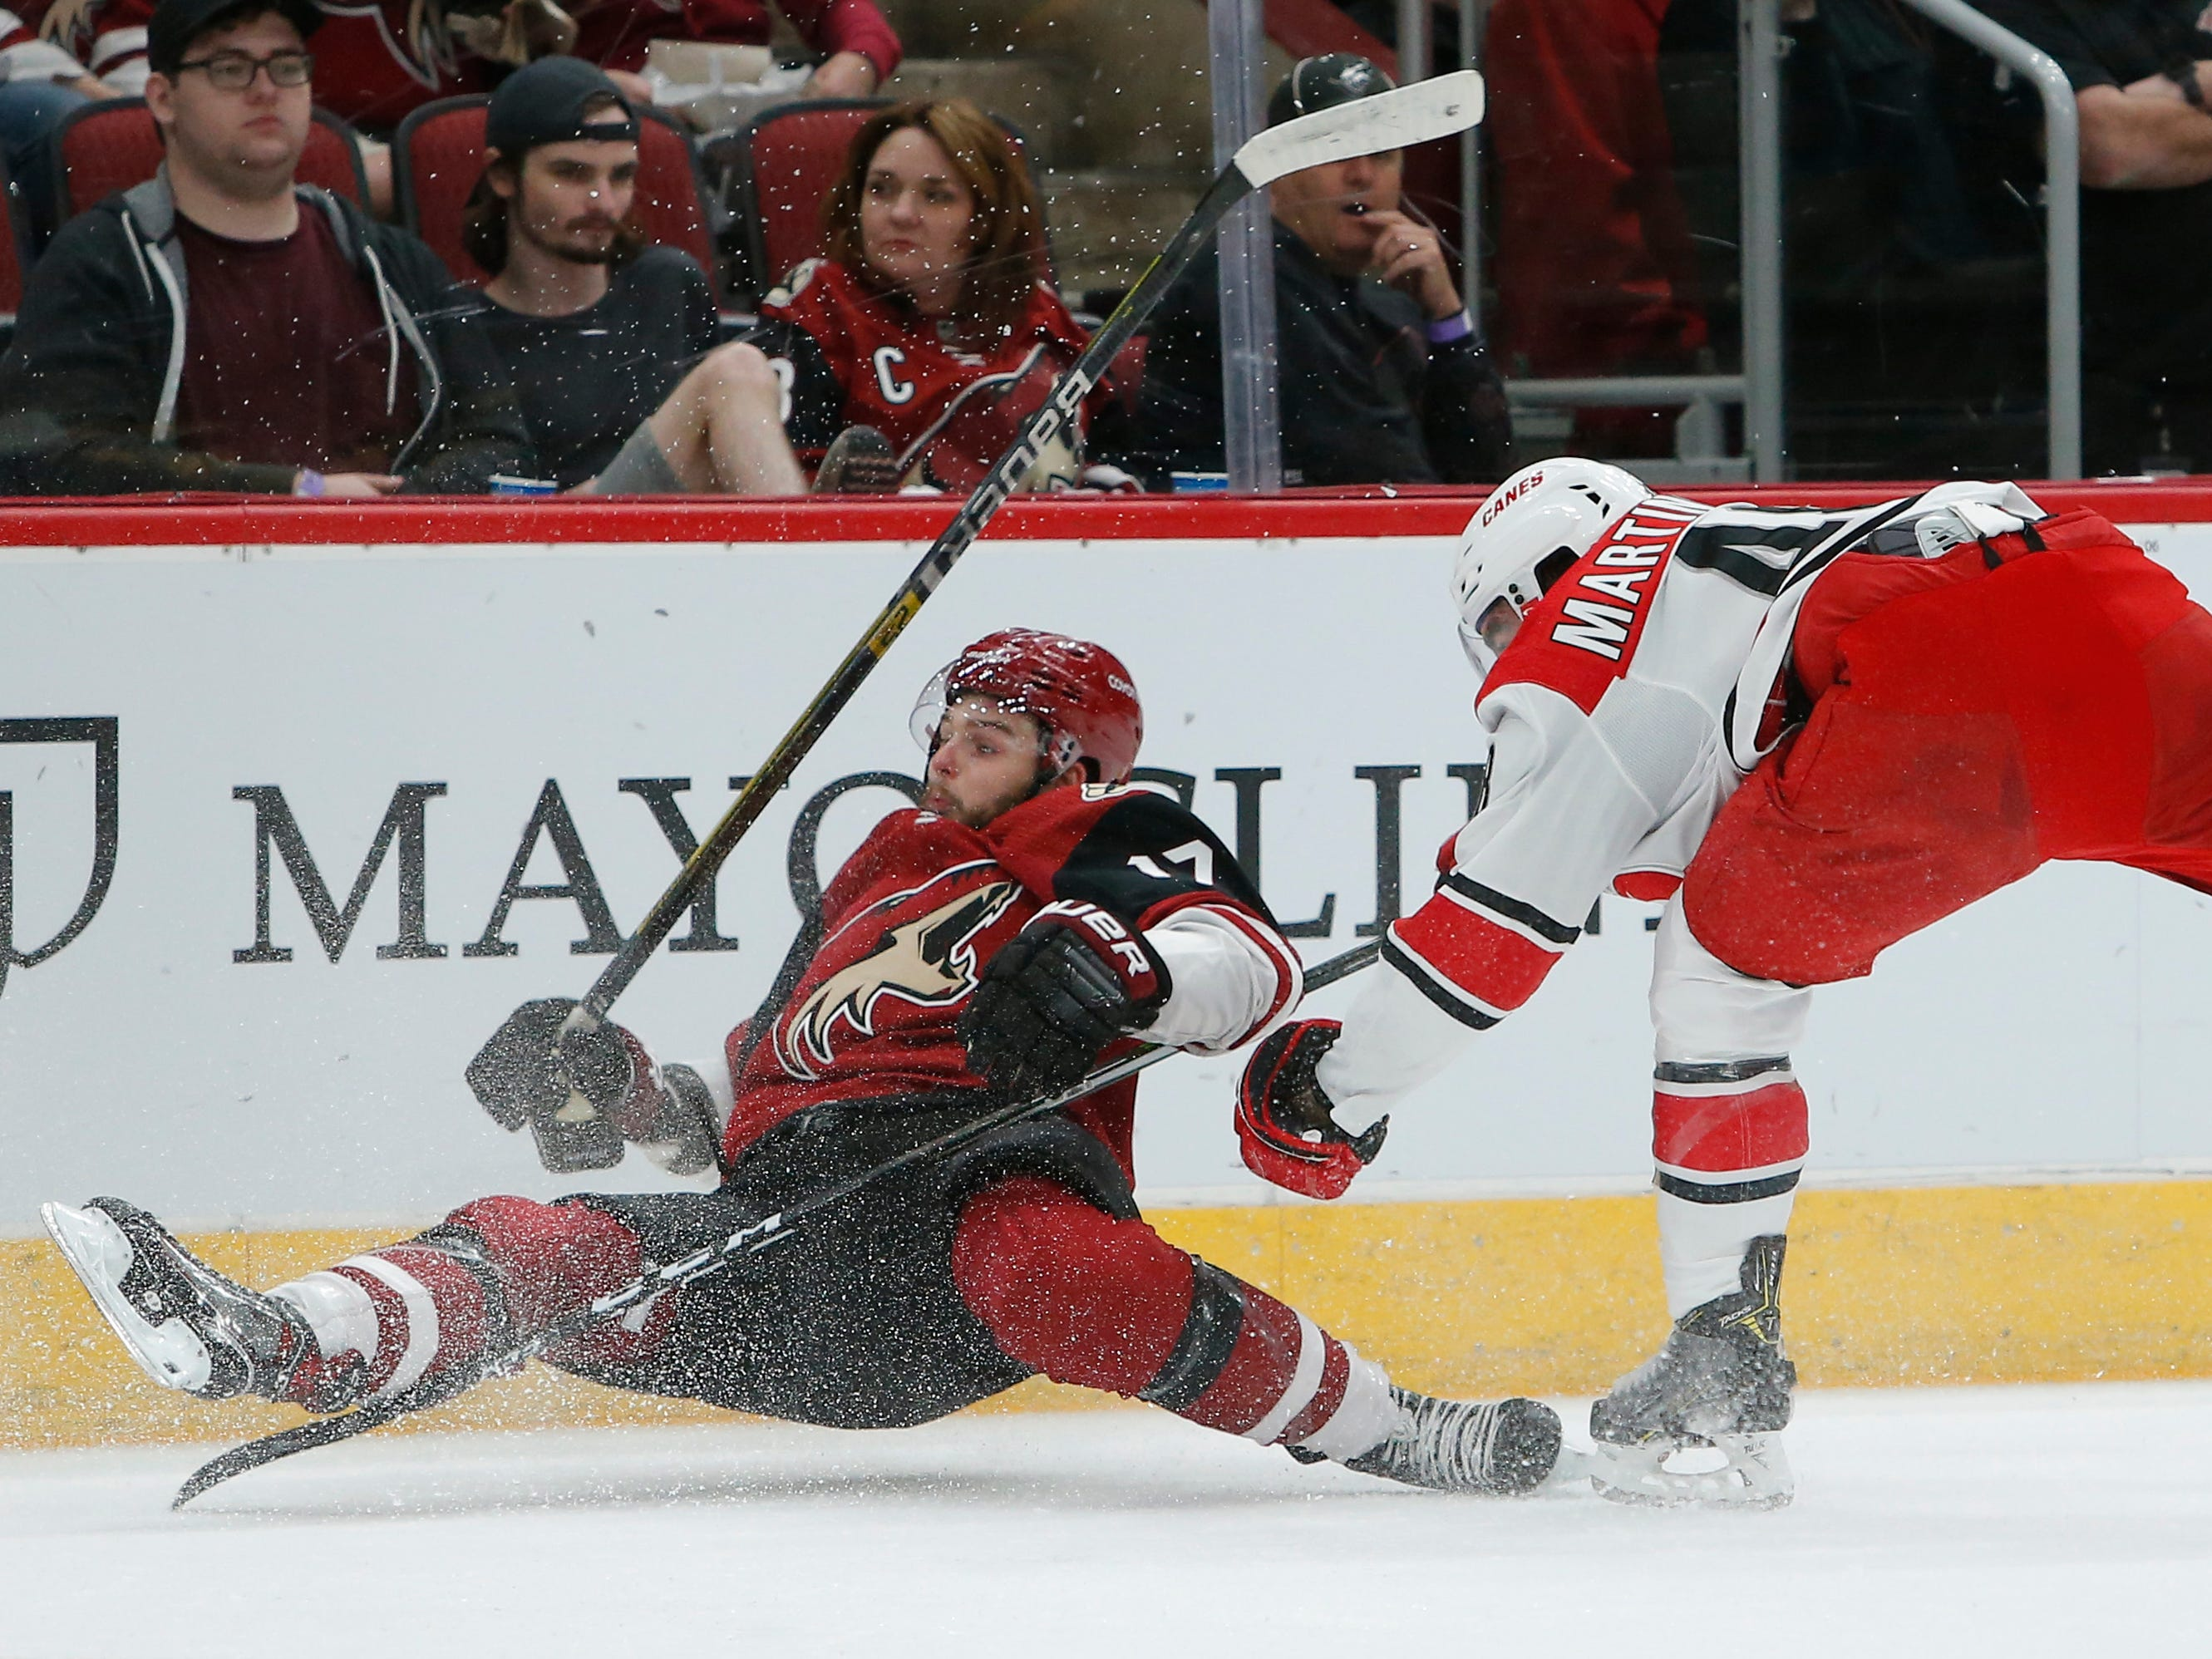 Carolina Hurricanes left wing Jordan Martinook (48) drags down Arizona Coyotes center Alex Galchenyuk for a tripping penalty in the first period during an NHL hockey game, Friday, Nov. 2, 2018, in Glendale, Ariz. (AP Photo/Rick Scuteri)